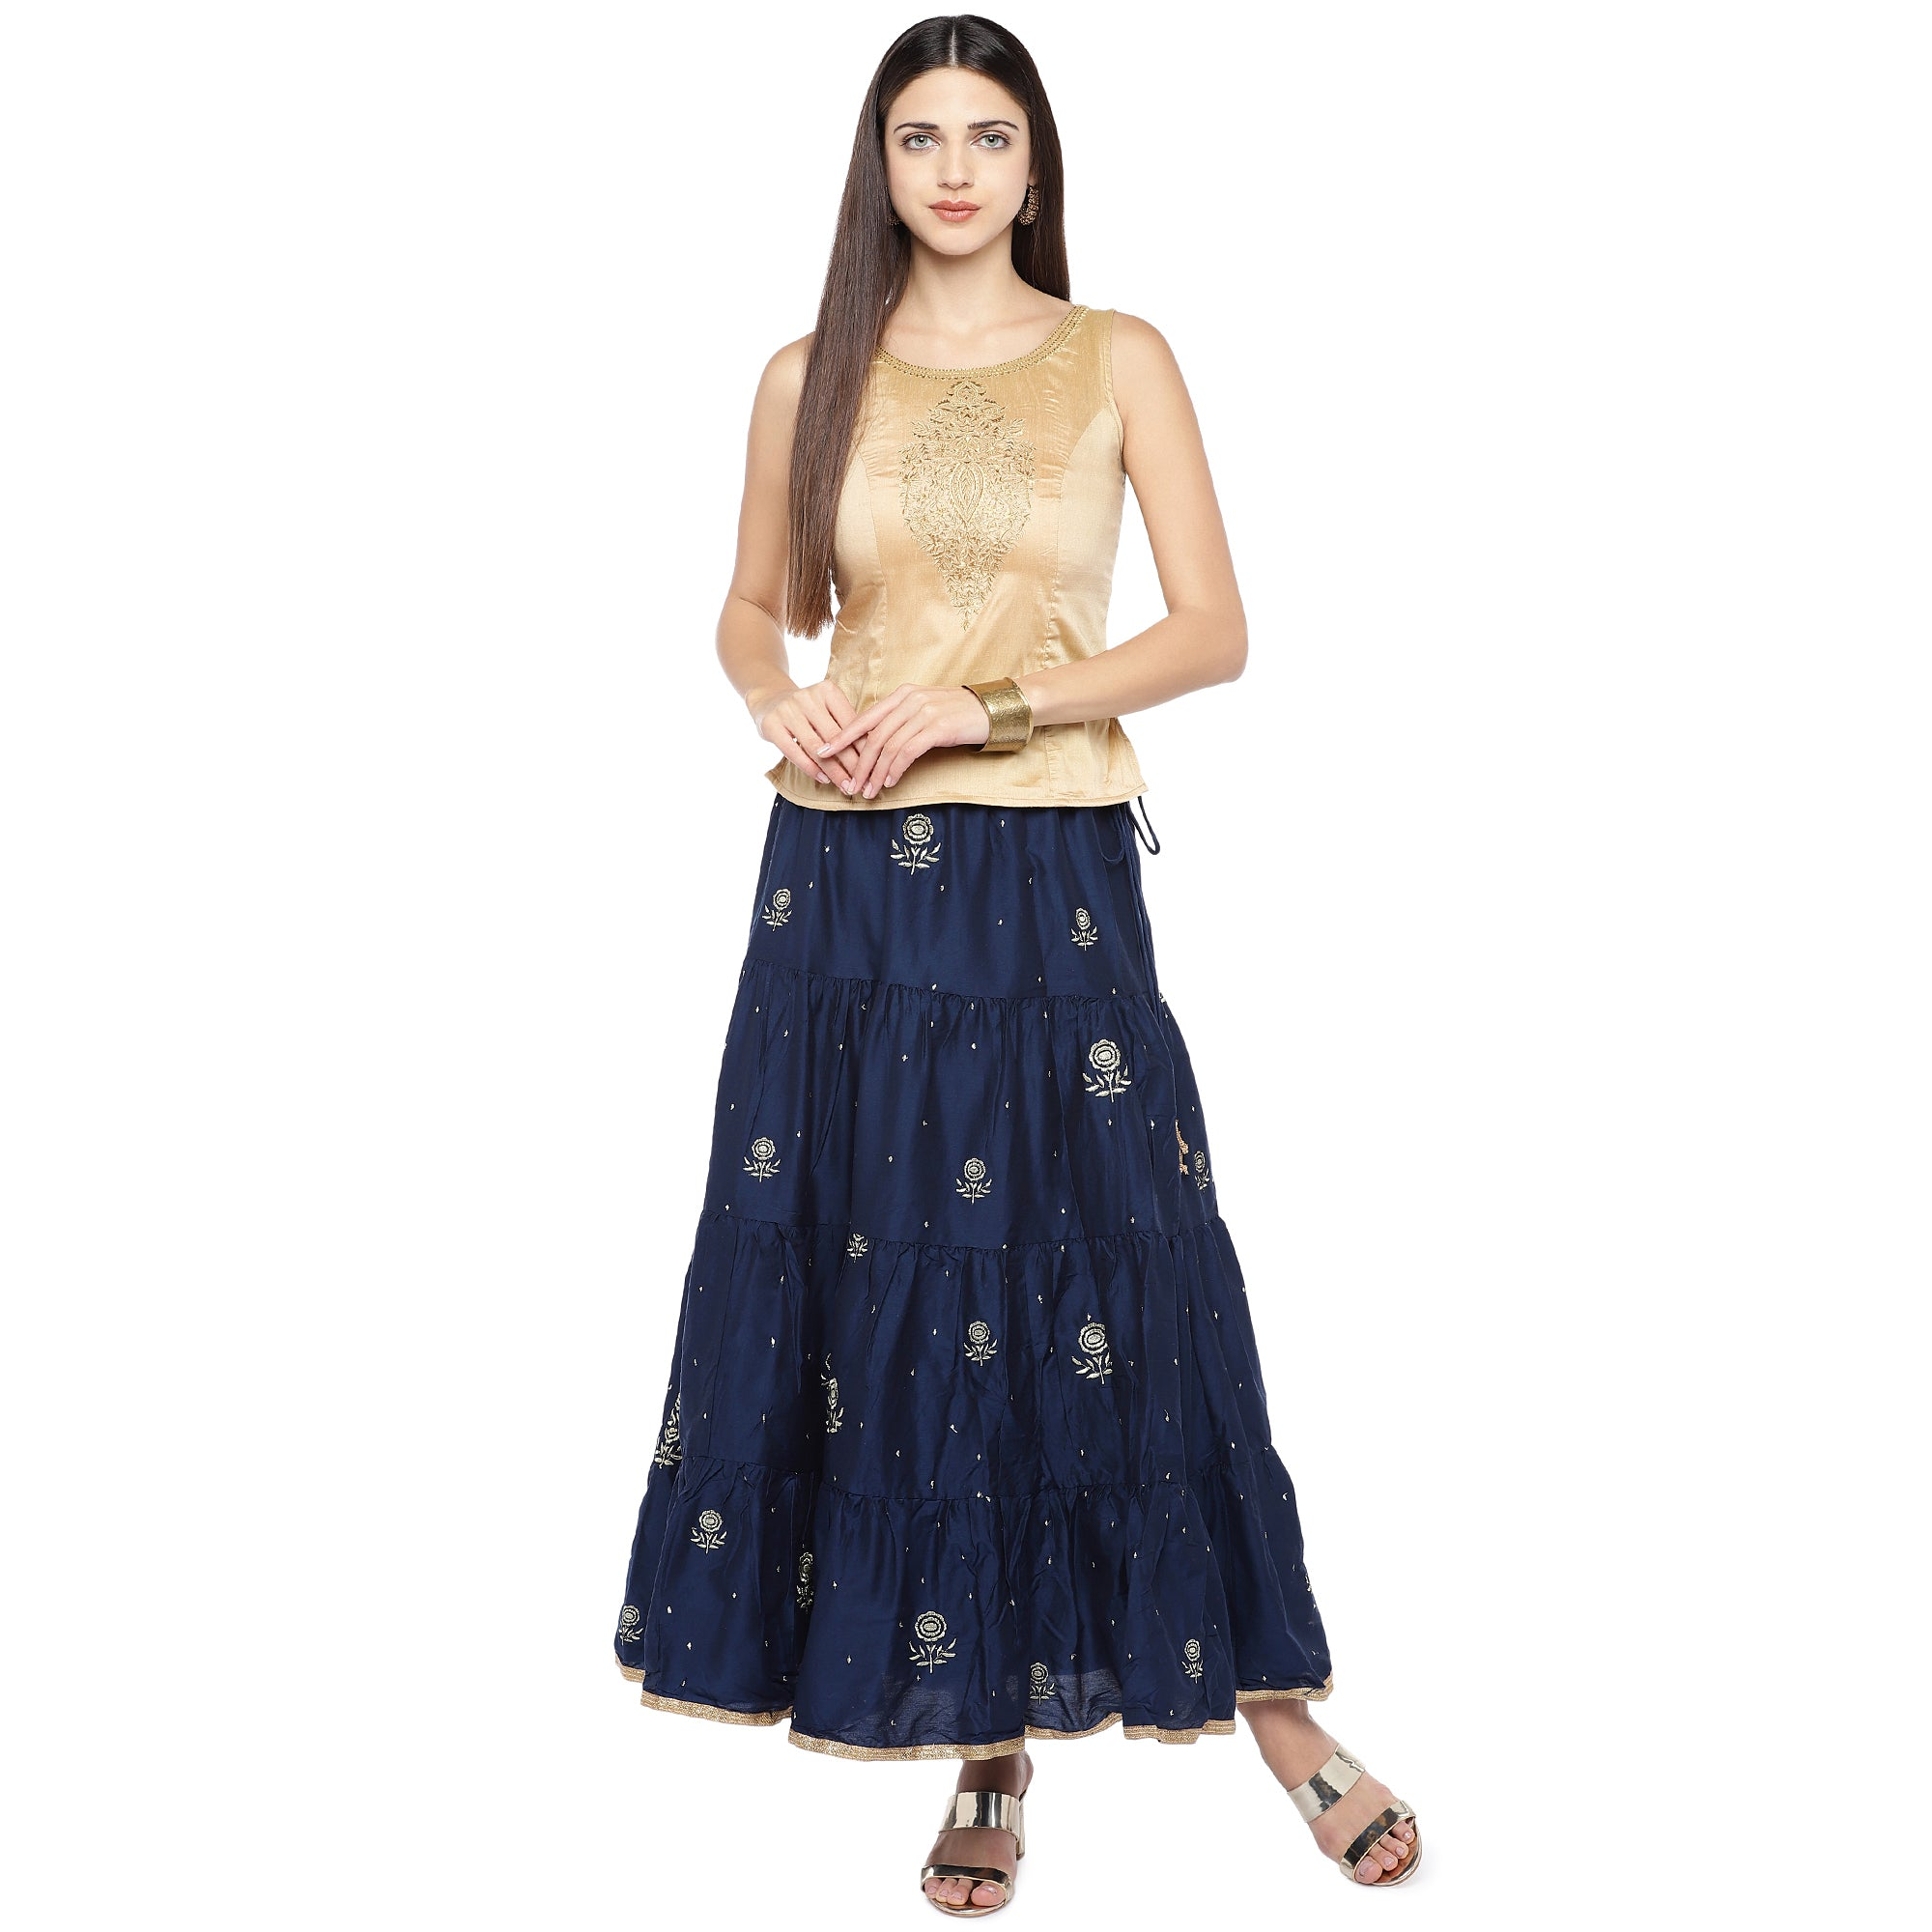 Navy Blue Embroidered Flared Maxi Ethnic Skirt-4